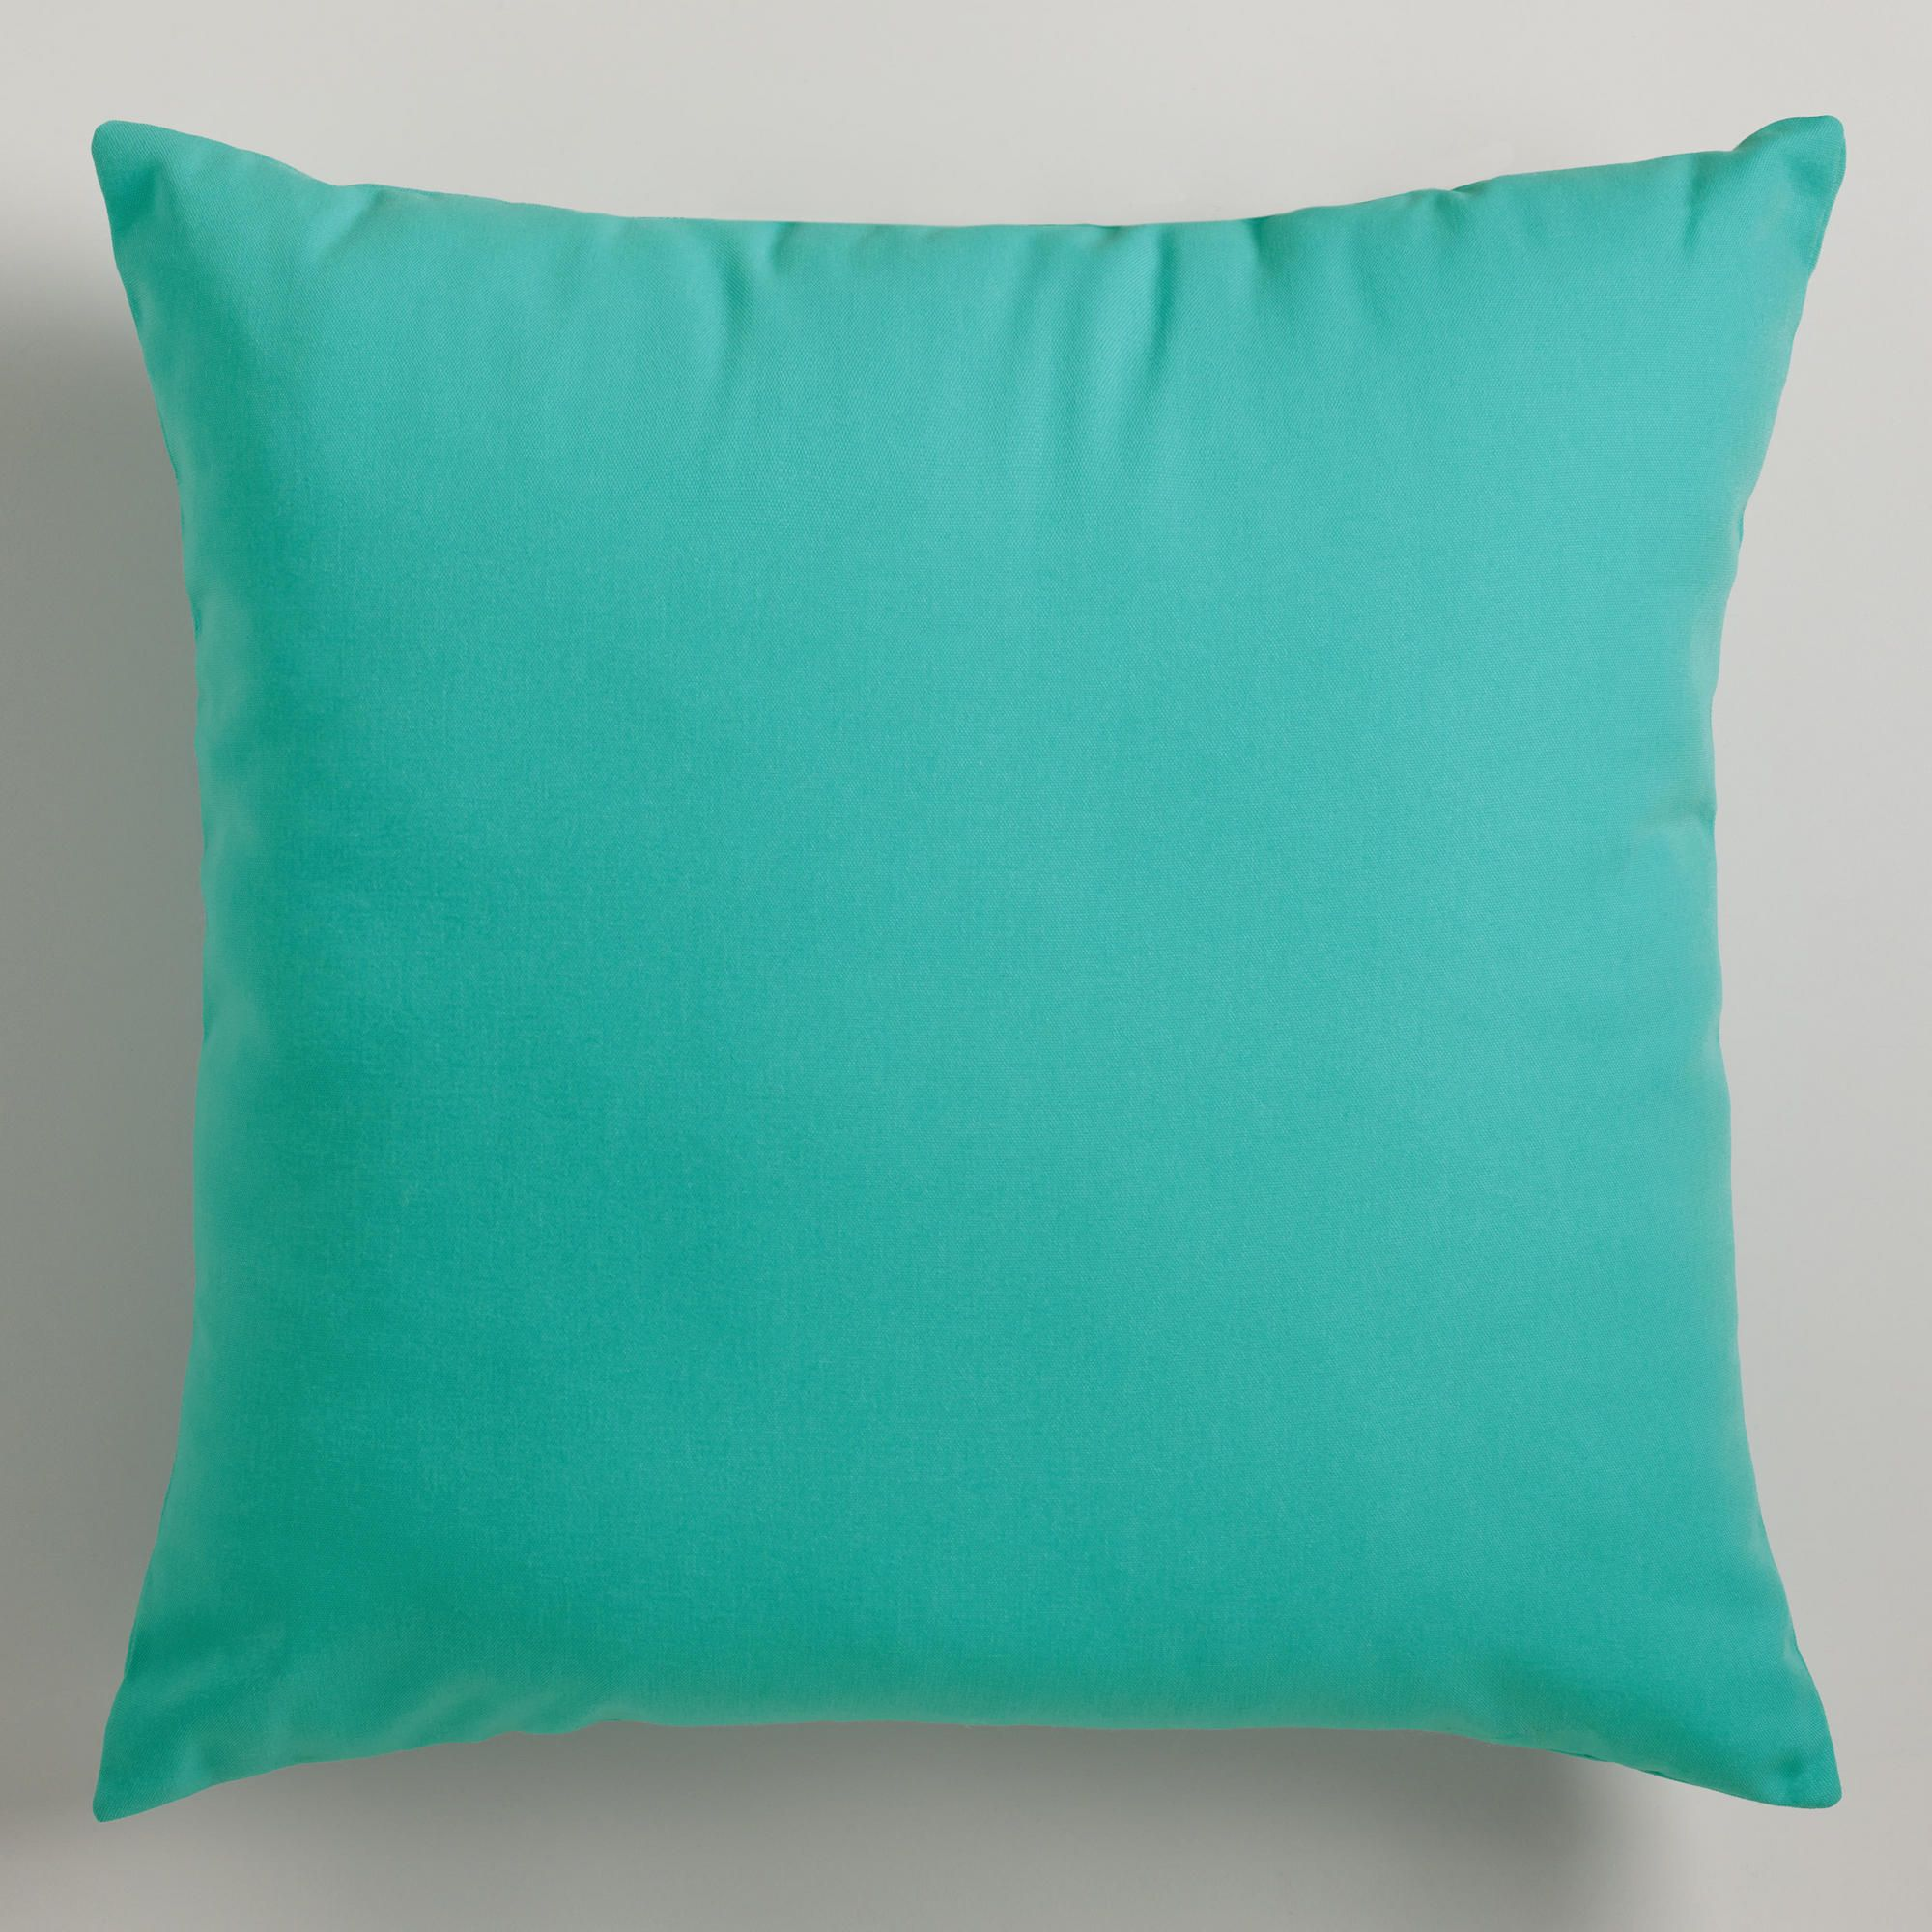 sofa white sofas throw target accent colored size pillow and small pillows colorful black cushions full of decorative teal